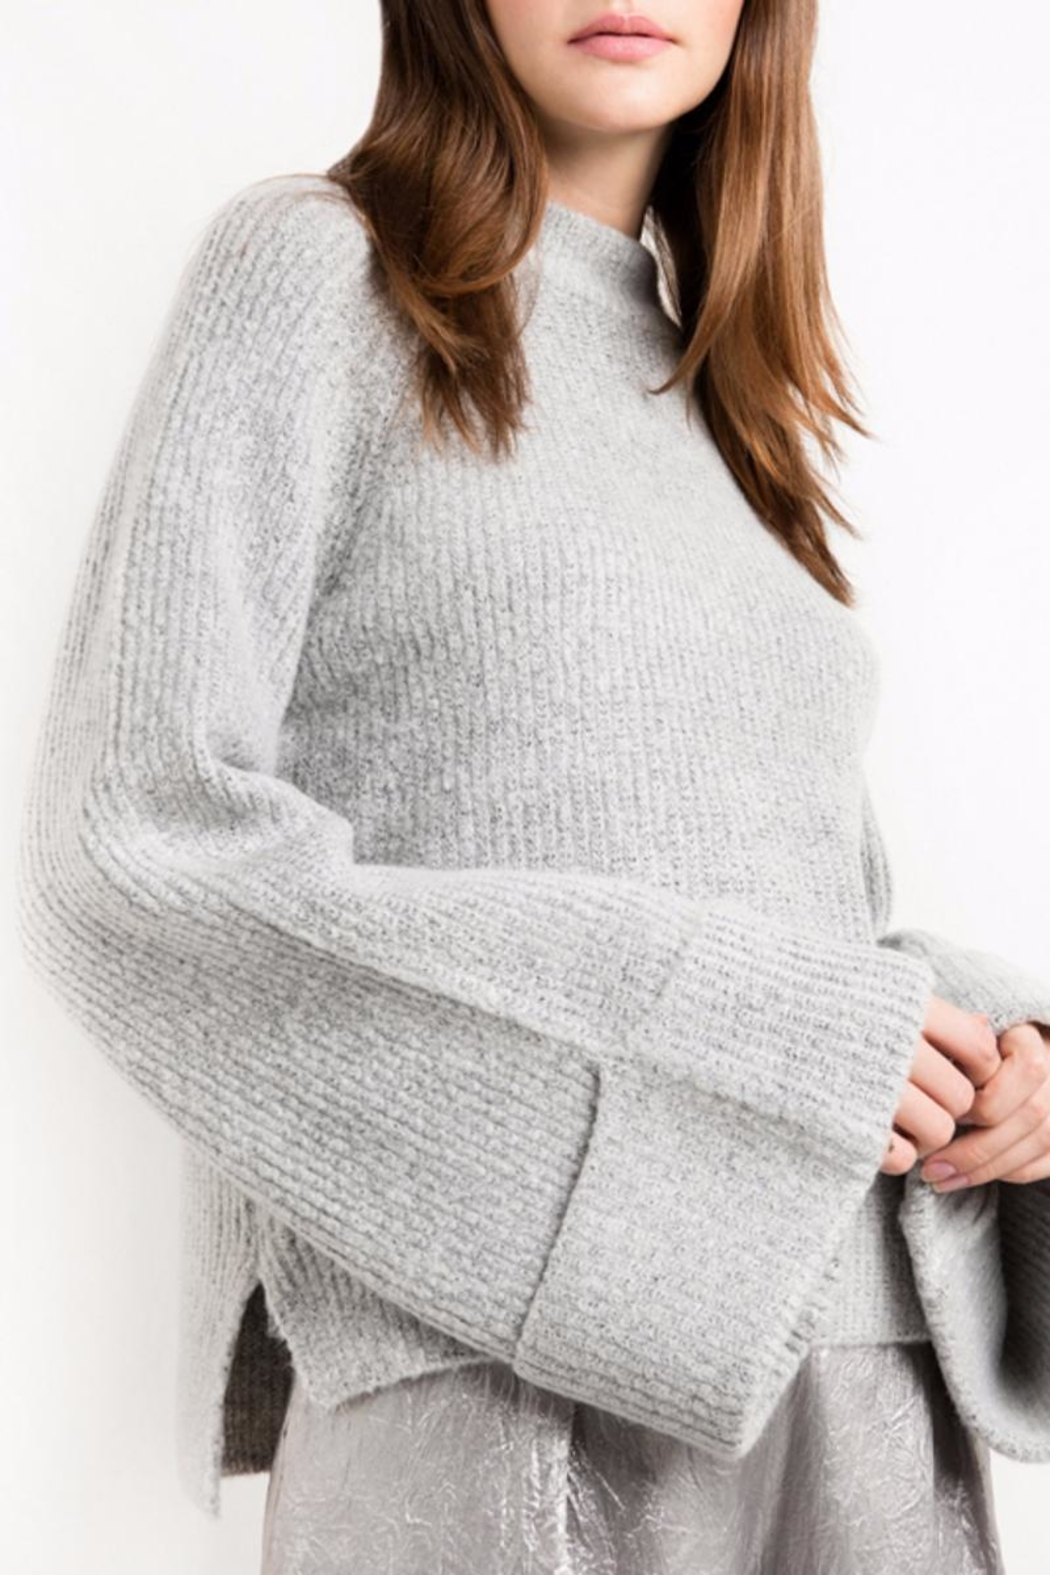 People Outfitter Go Softly Sweater - Main Image